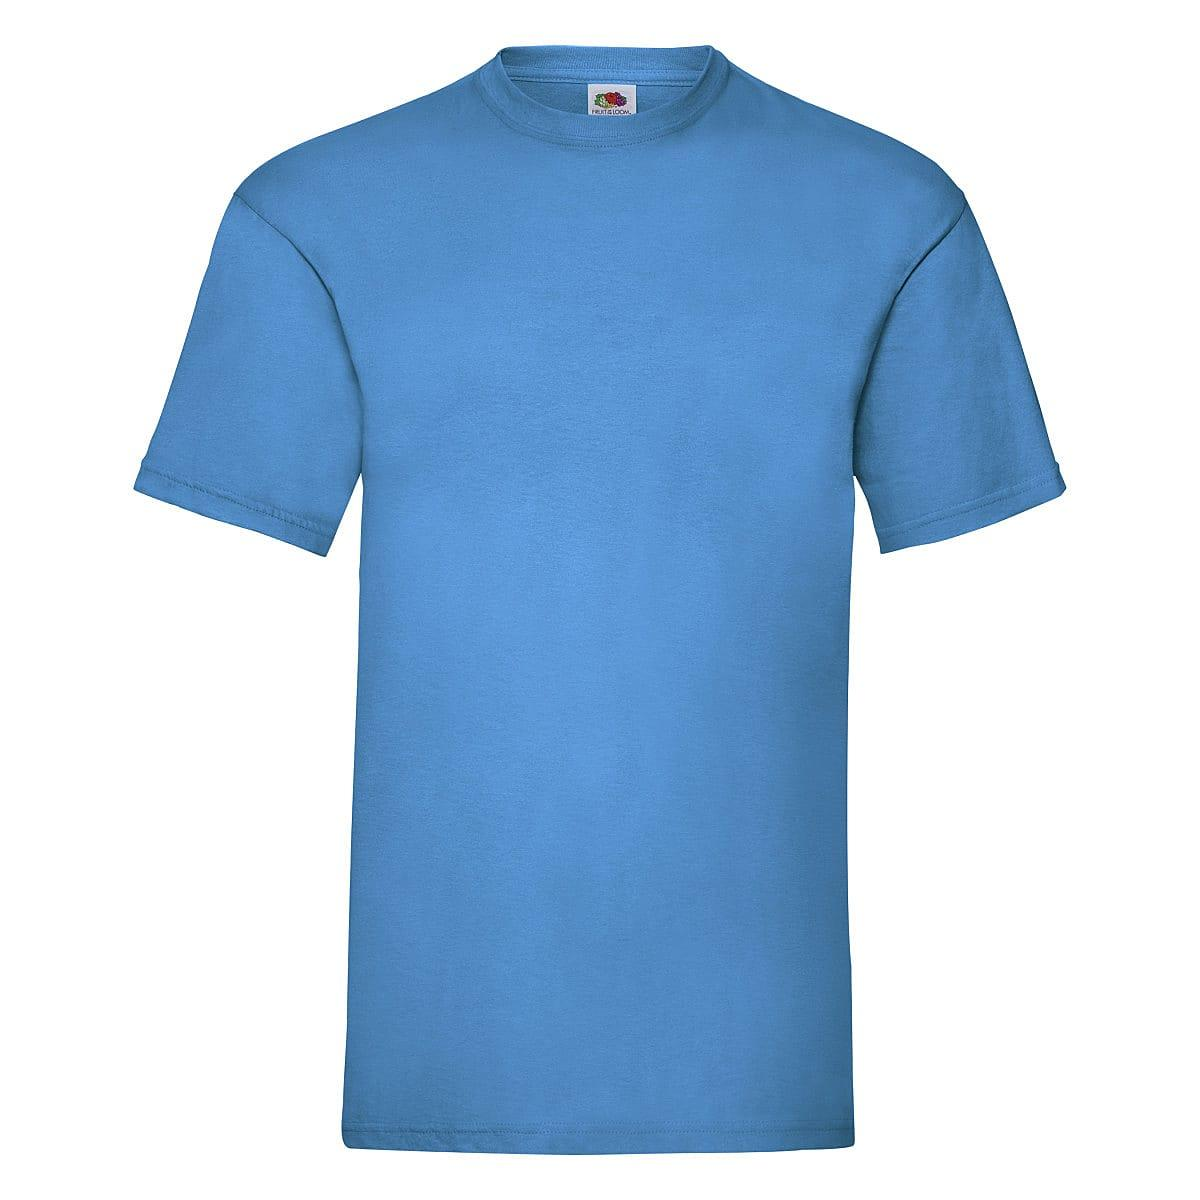 Fruit Of The Loom Valueweight T-Shirt in Azure Blue (Product Code: 61036)